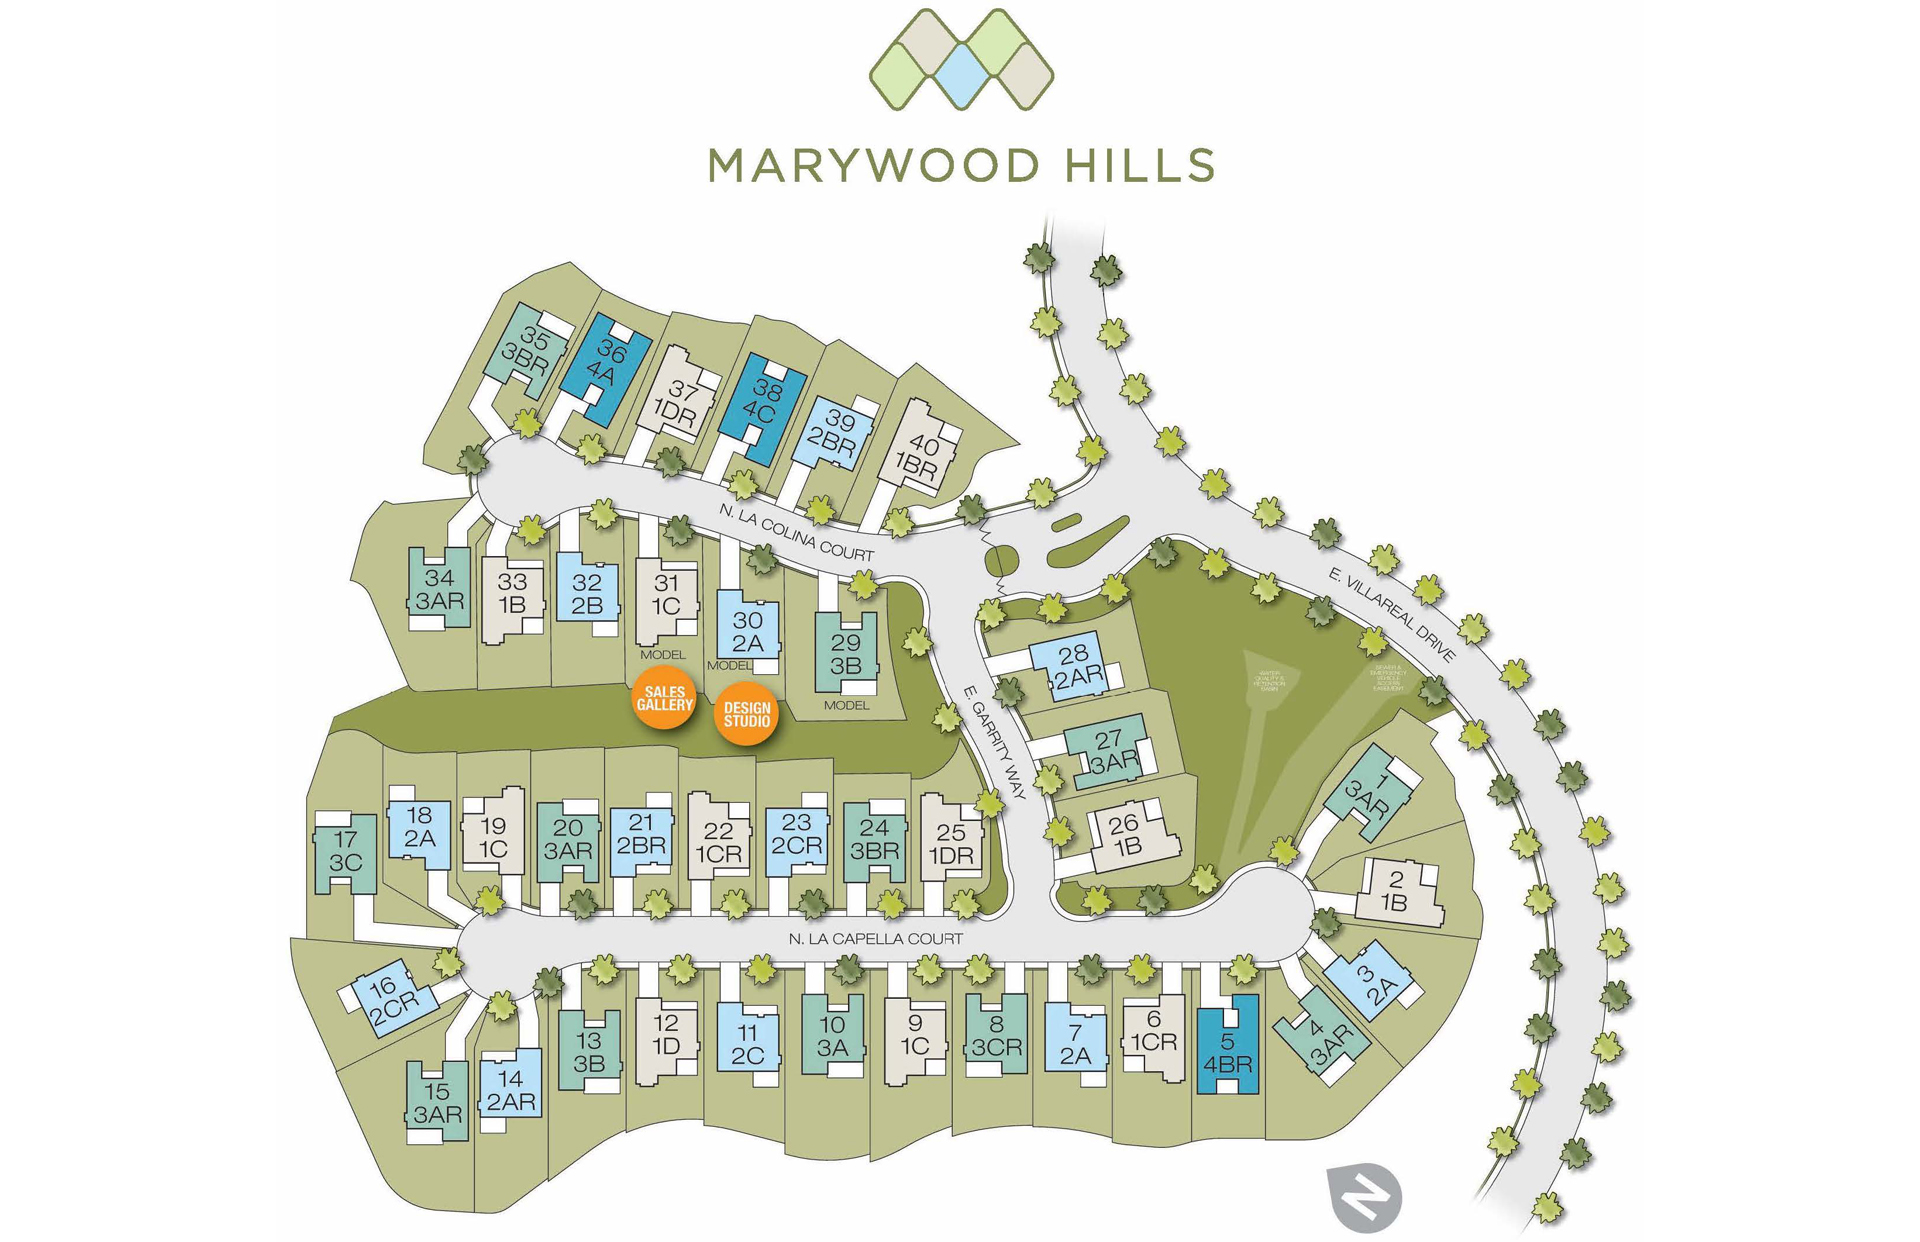 Marywood Hills Site Plan